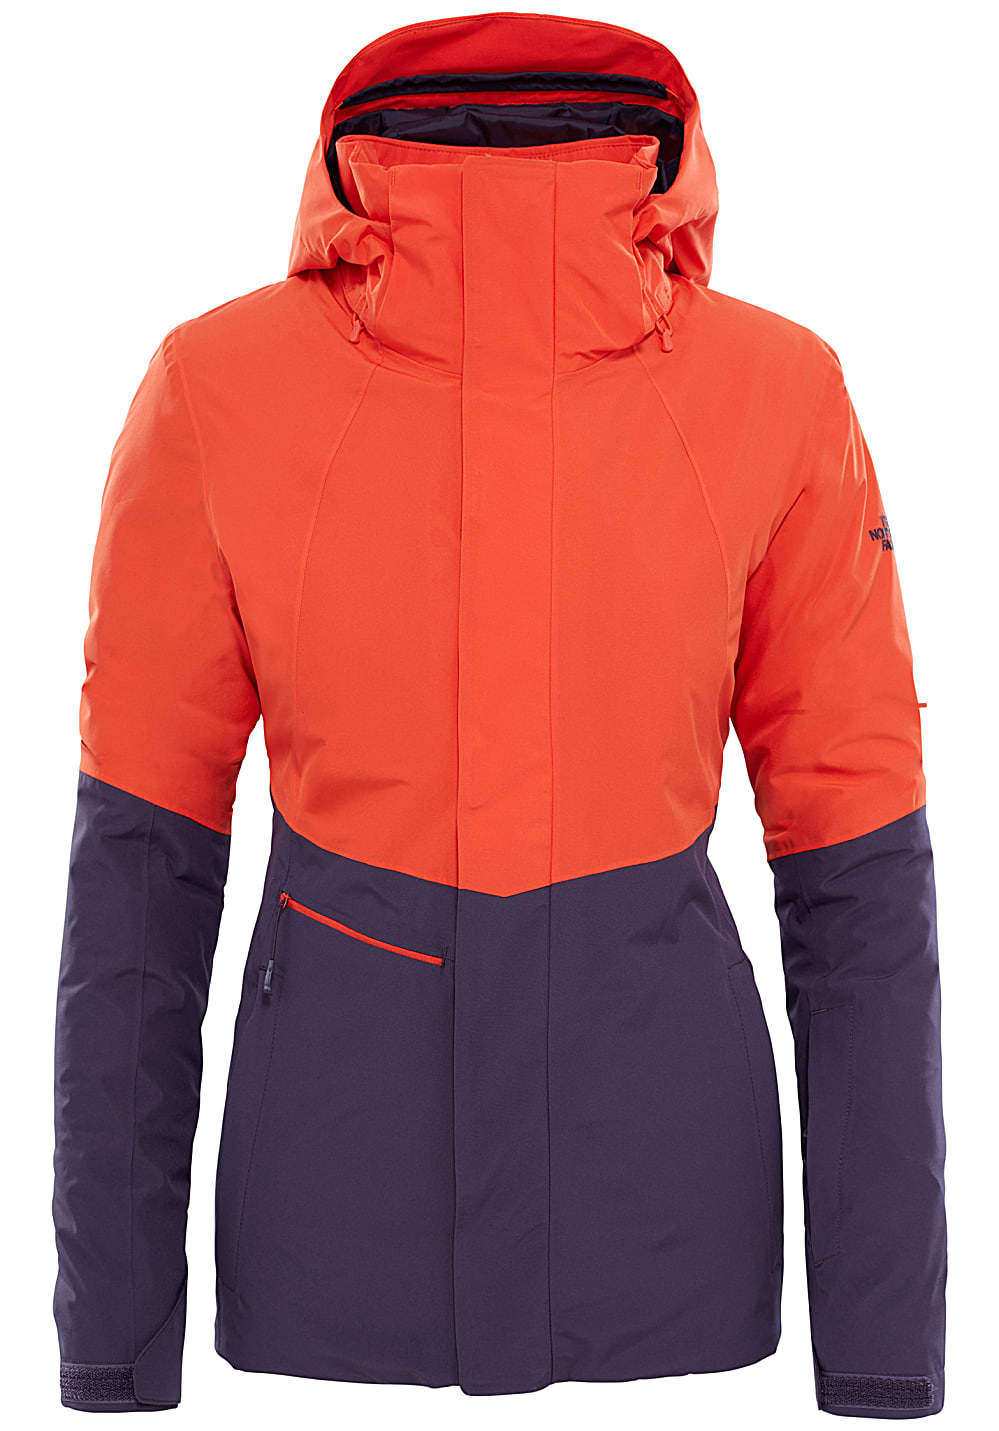 the latest 2cb49 511d7 THE NORTH FACE Garner Triclimate - Outdoorjacke für Damen - Rot